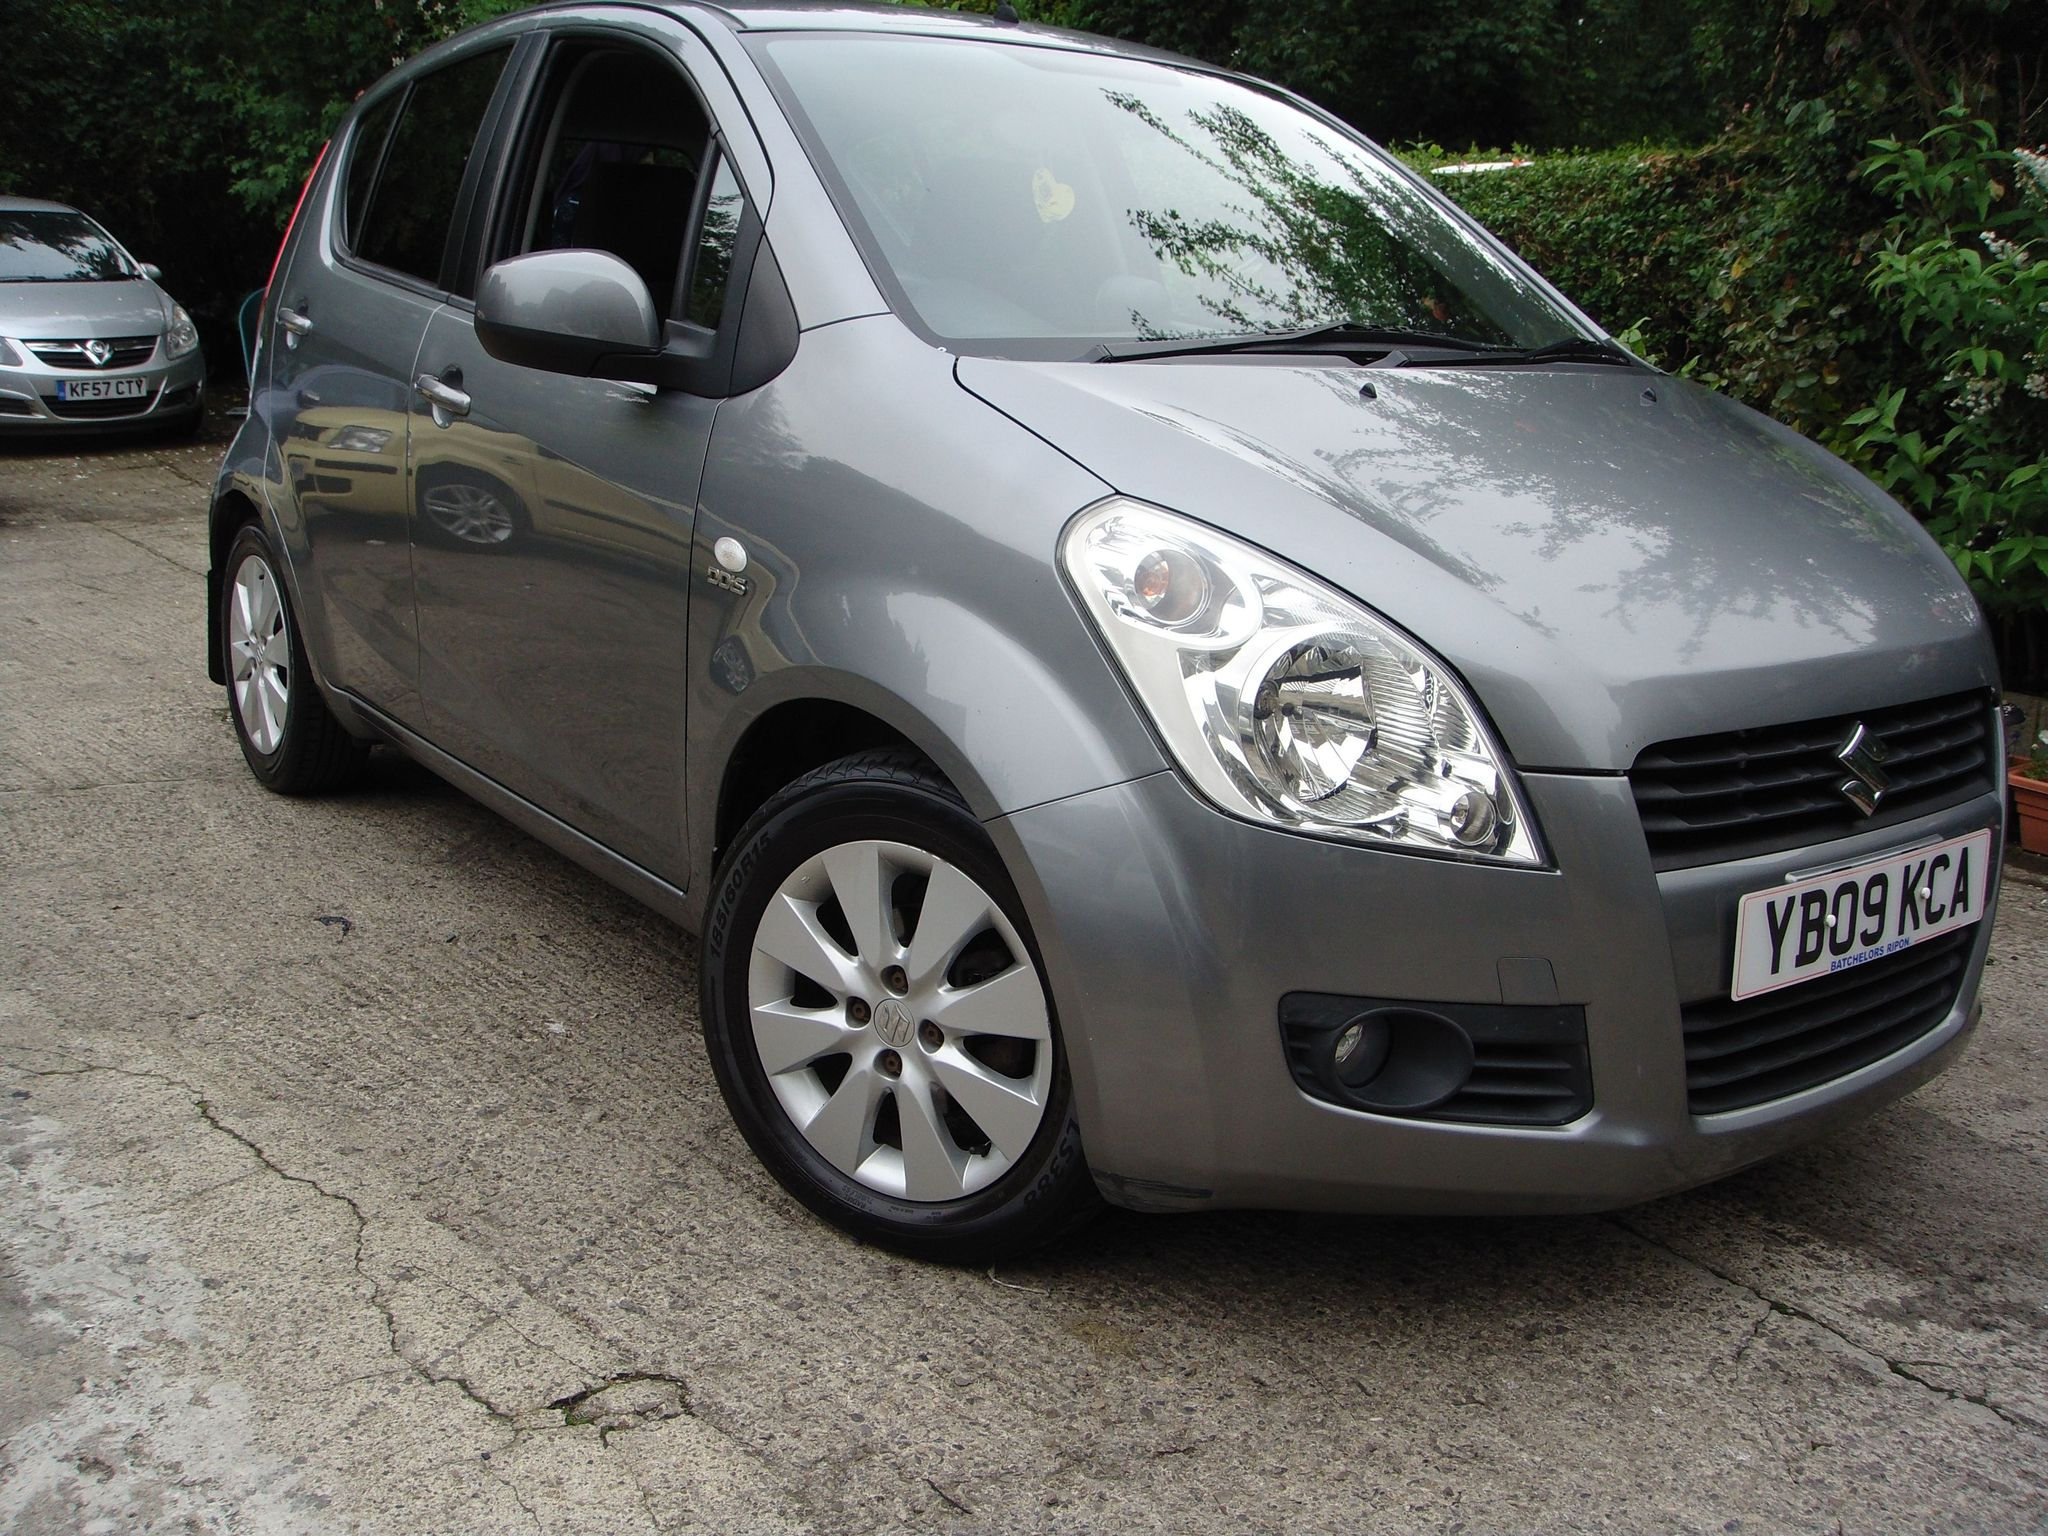 1.2 L Cars for Sale Near Me Best Of Cheap Cars for Sale On Auto Trader Uk